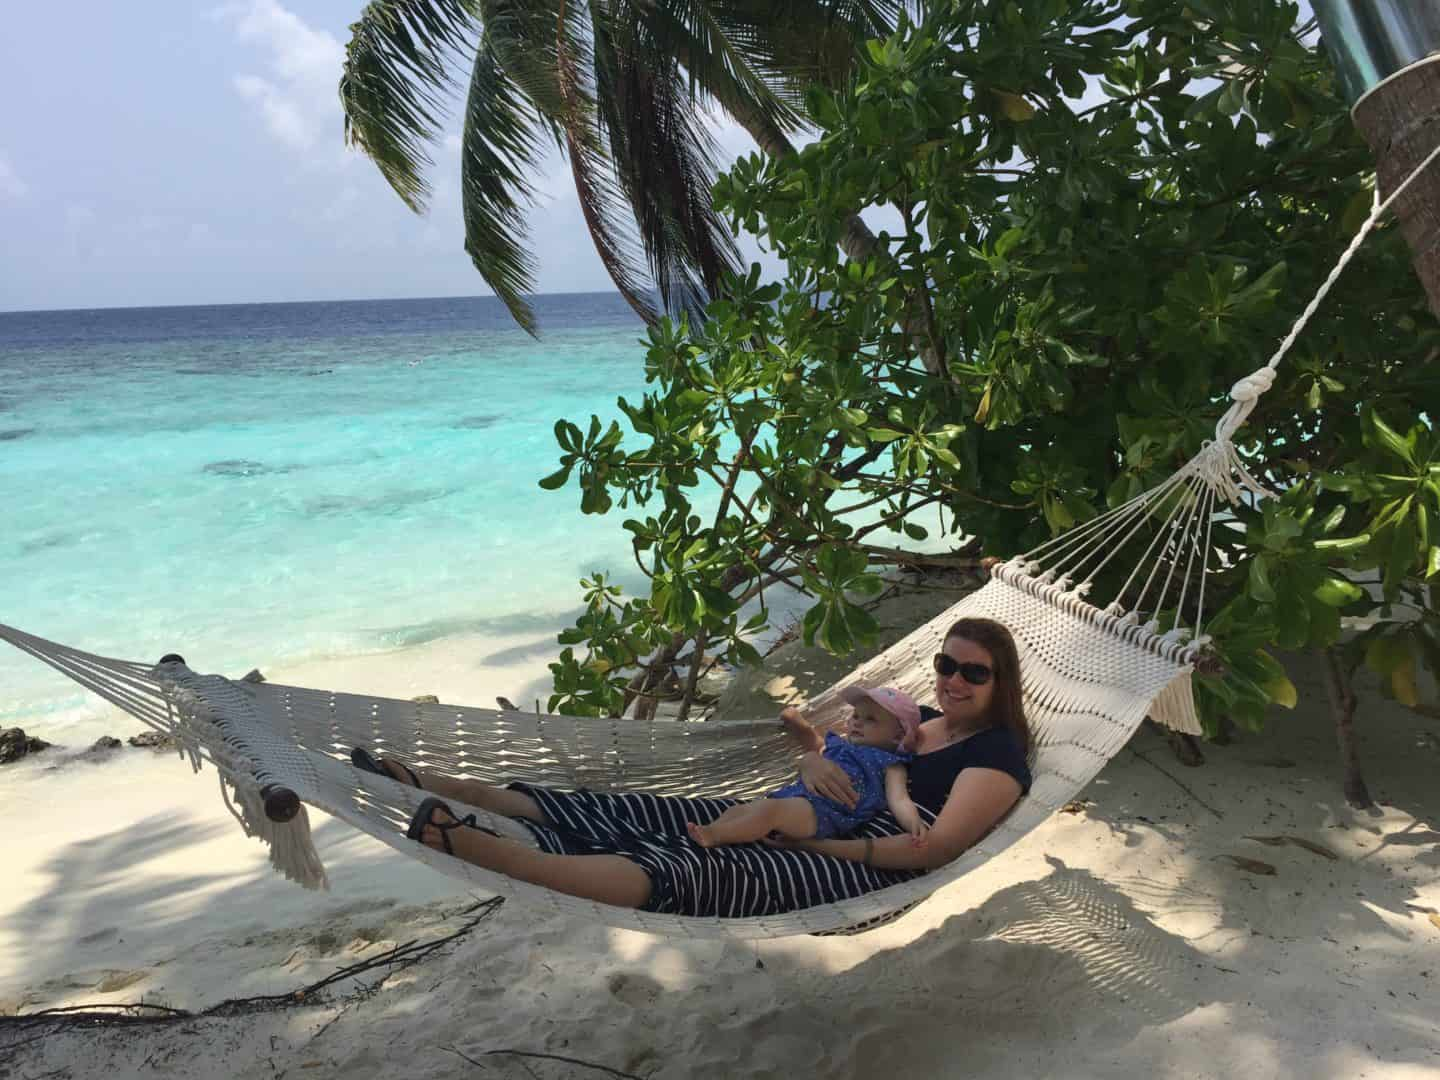 Bandos Resort Maldives – a perfect Maldives family friendly resort?